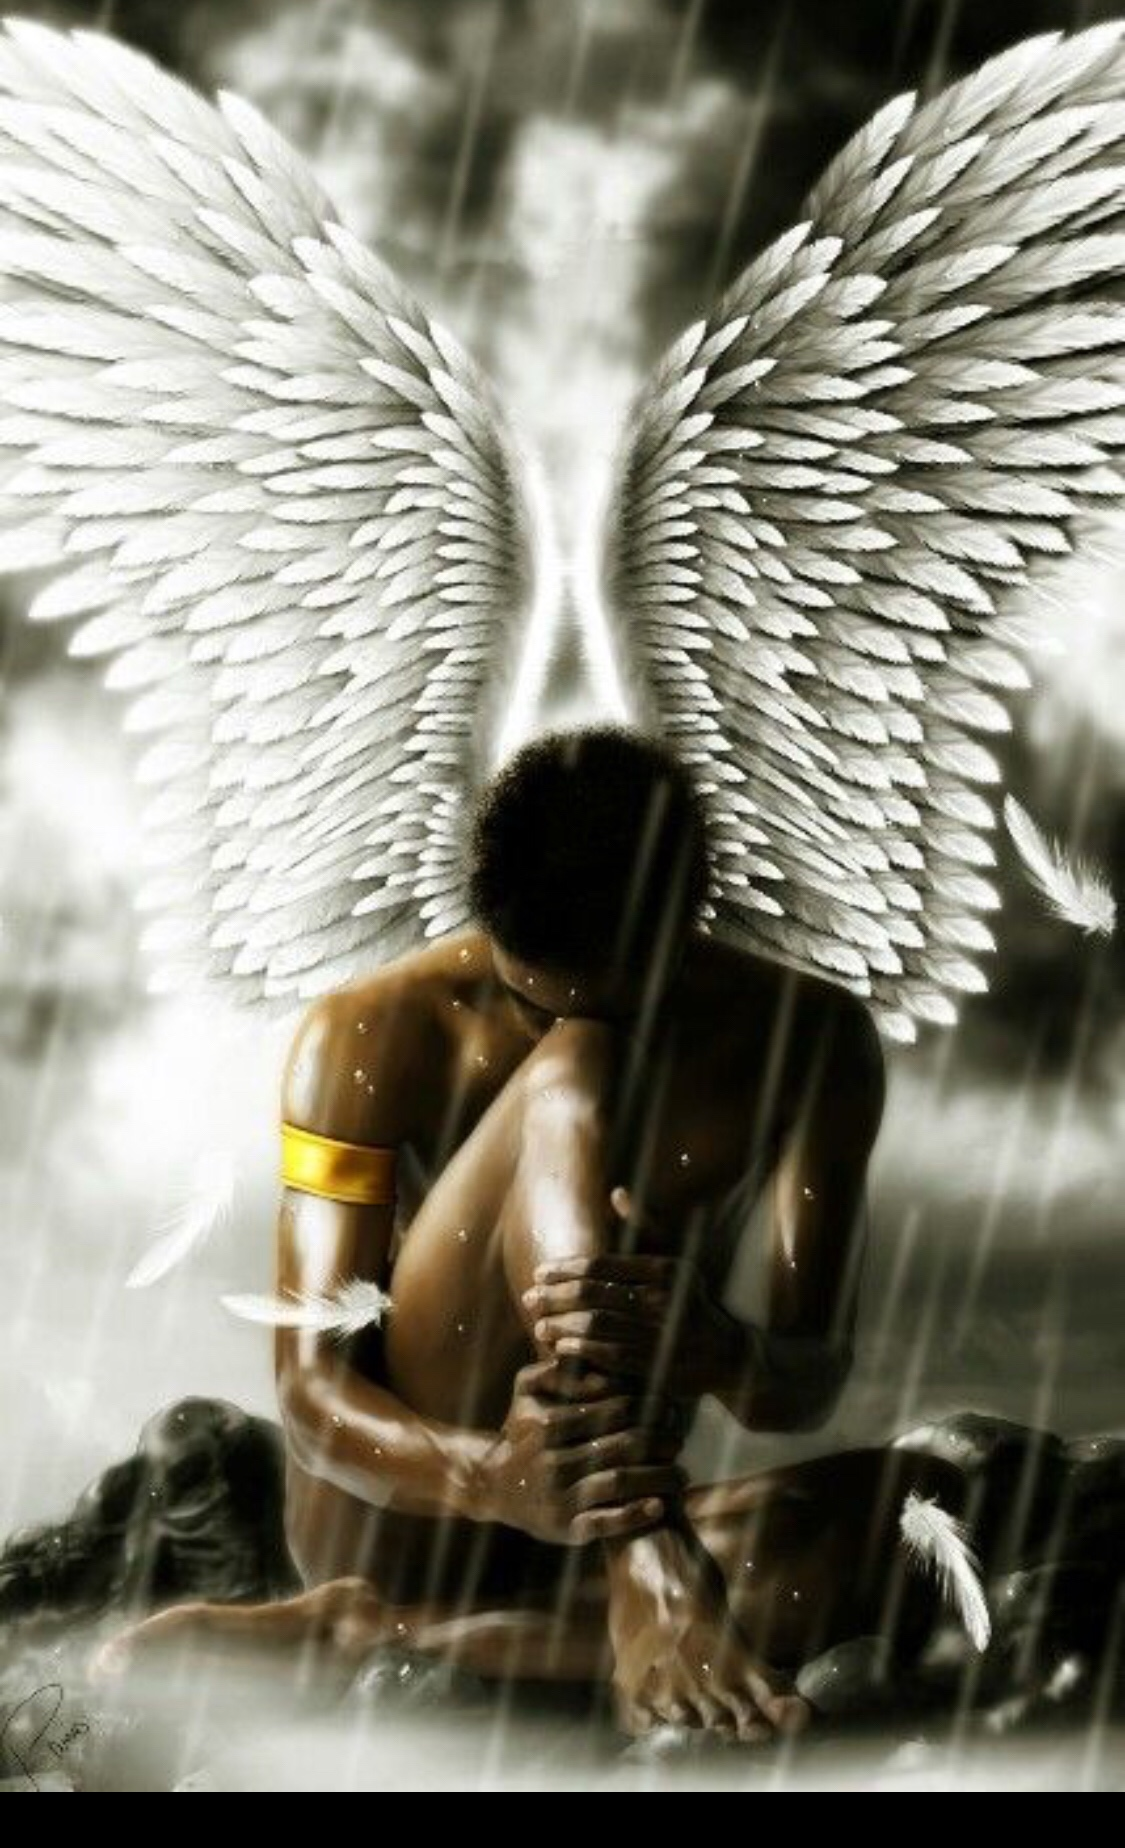 Easter Time & The Archangel Michael